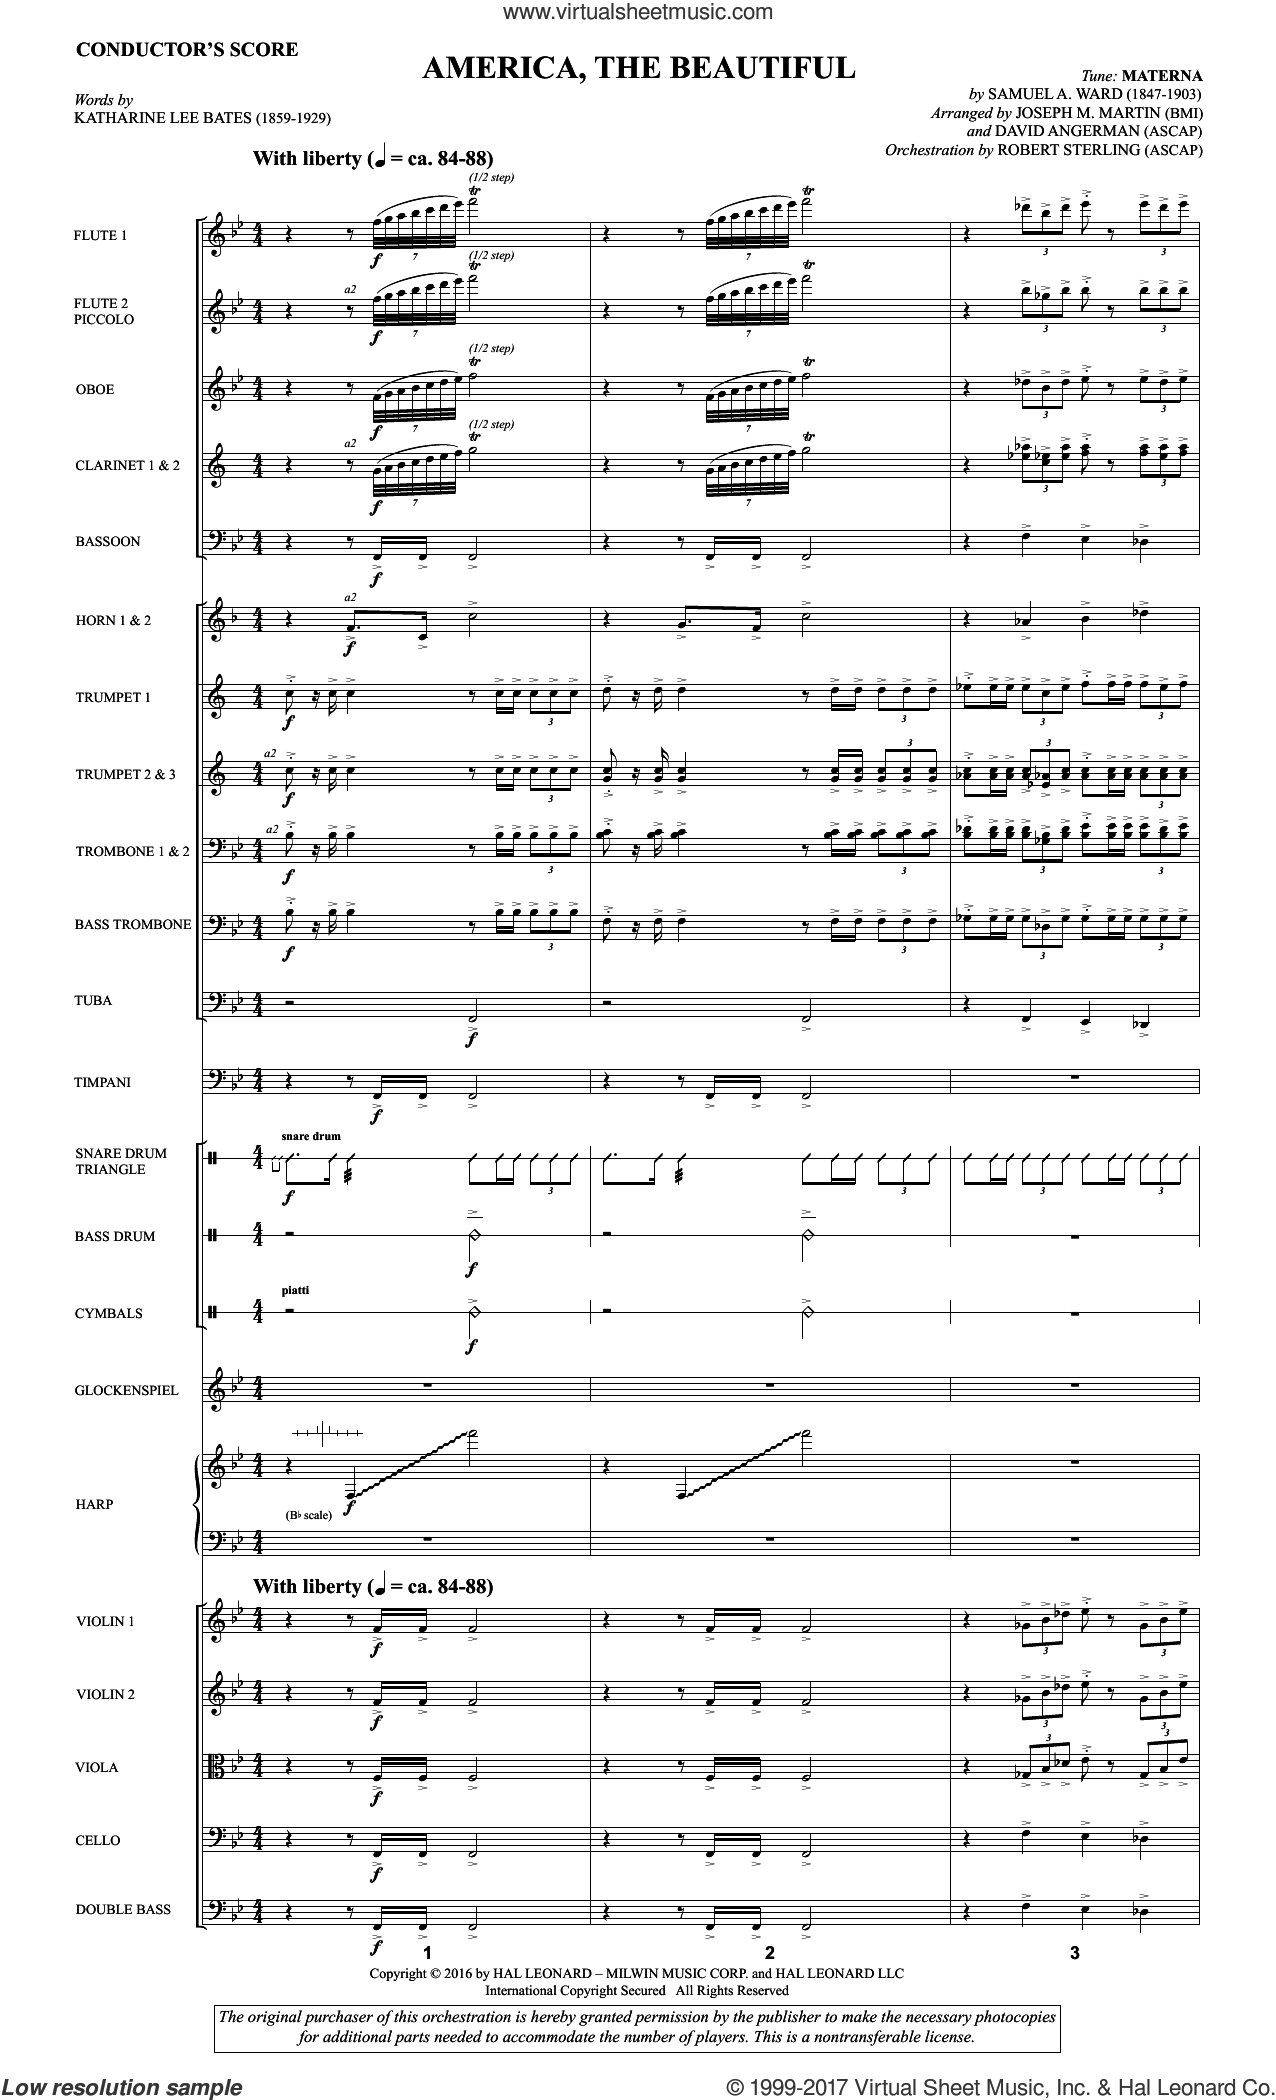 America, the Beautiful (COMPLETE) sheet music for orchestra/band by David Angerman, Joseph M. Martin, Katherine Lee Bates and Samuel Augustus Ward, intermediate skill level